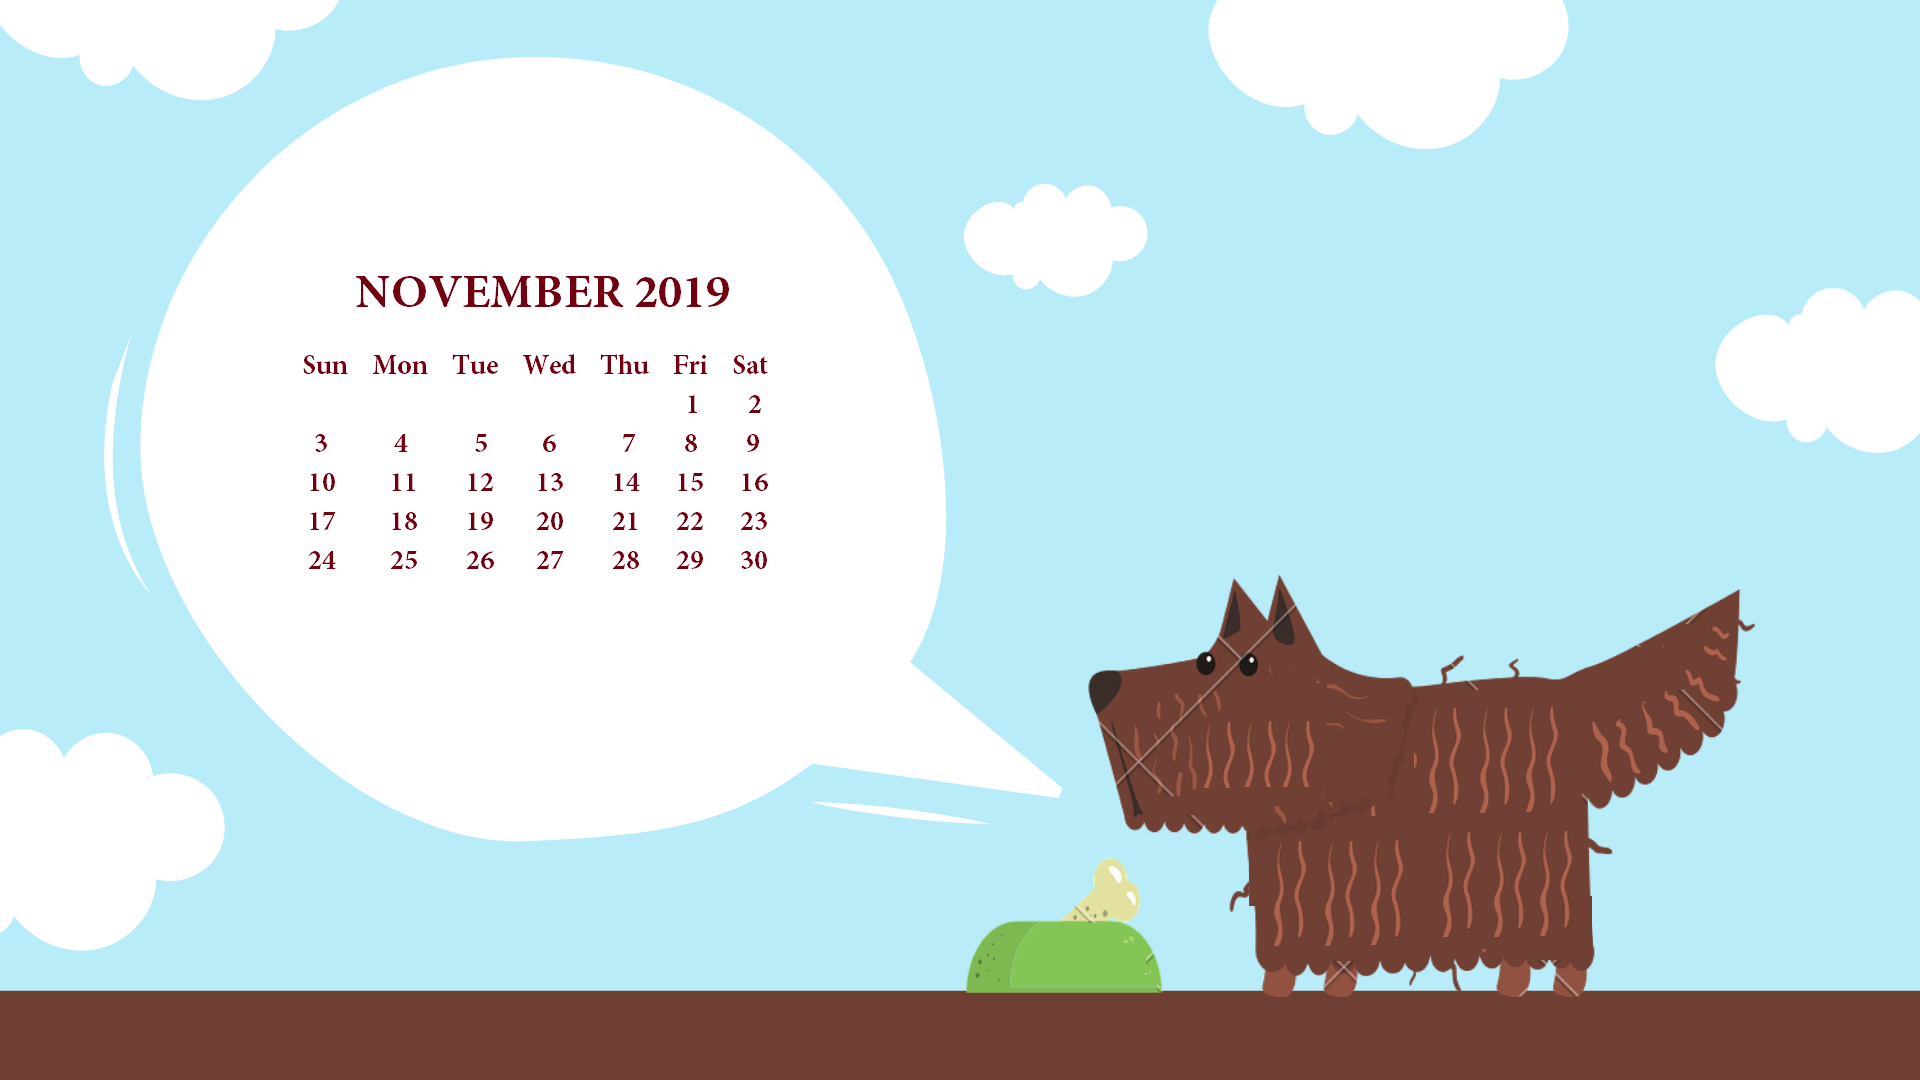 November 2019 Calendar HD Wallpaper